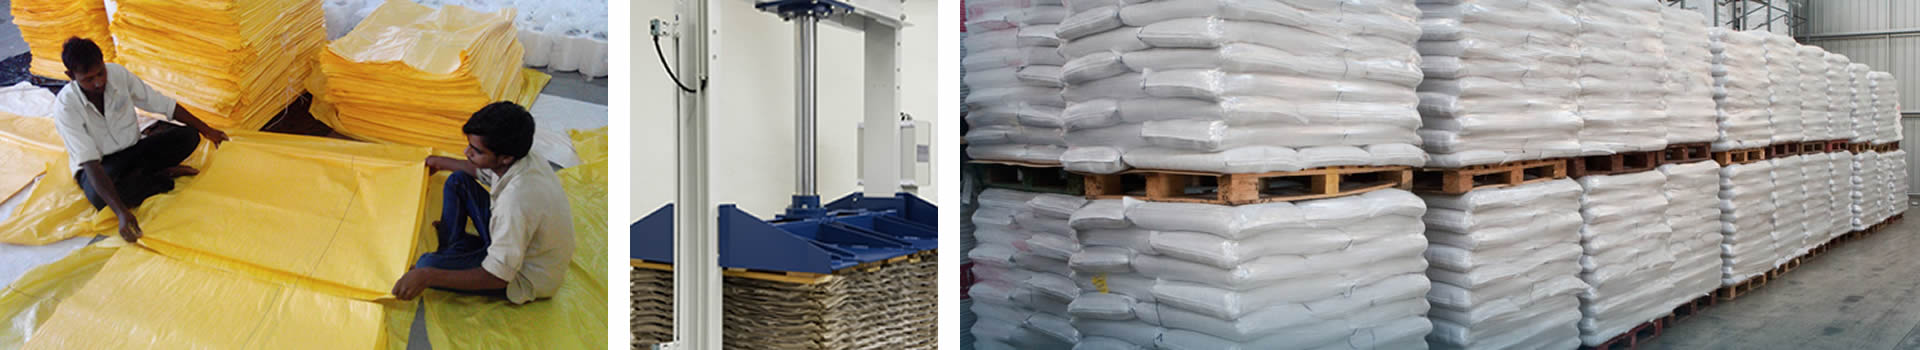 FIBC Bulk Bag laboratory testing equipment